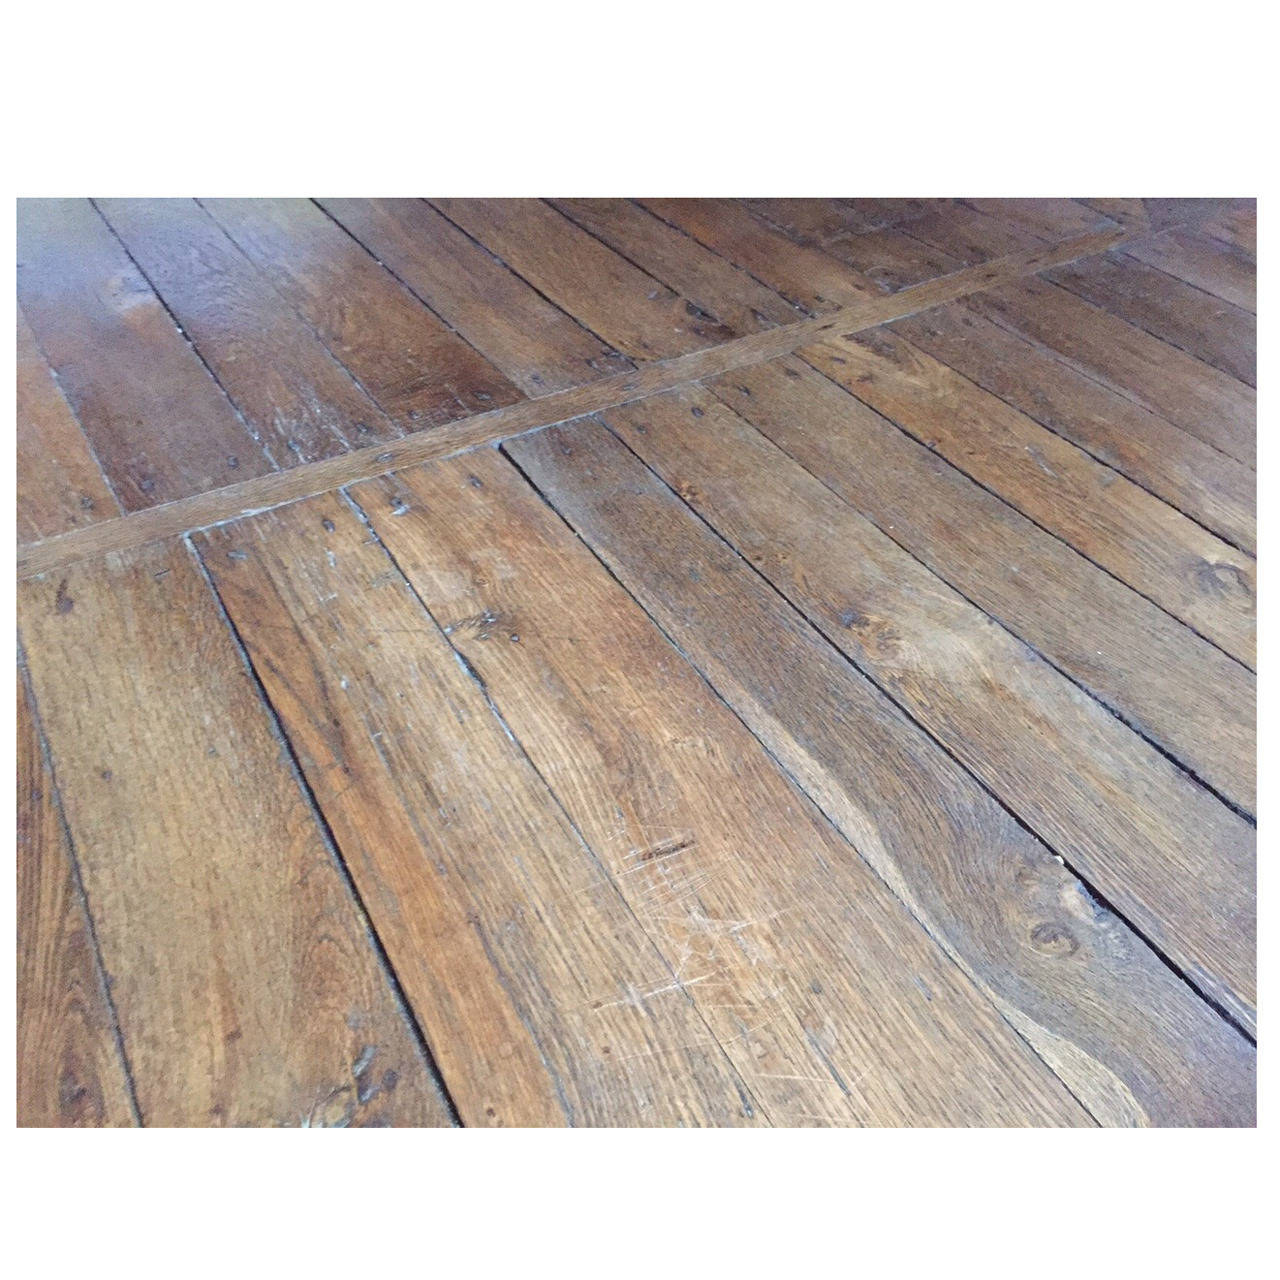 Century Hardwood Flooring photo of new century hardwood floors sunnyvale ca united states carpeted stairs French Antique Flooring Wood Oak Original Floor 17th 18th Century 1